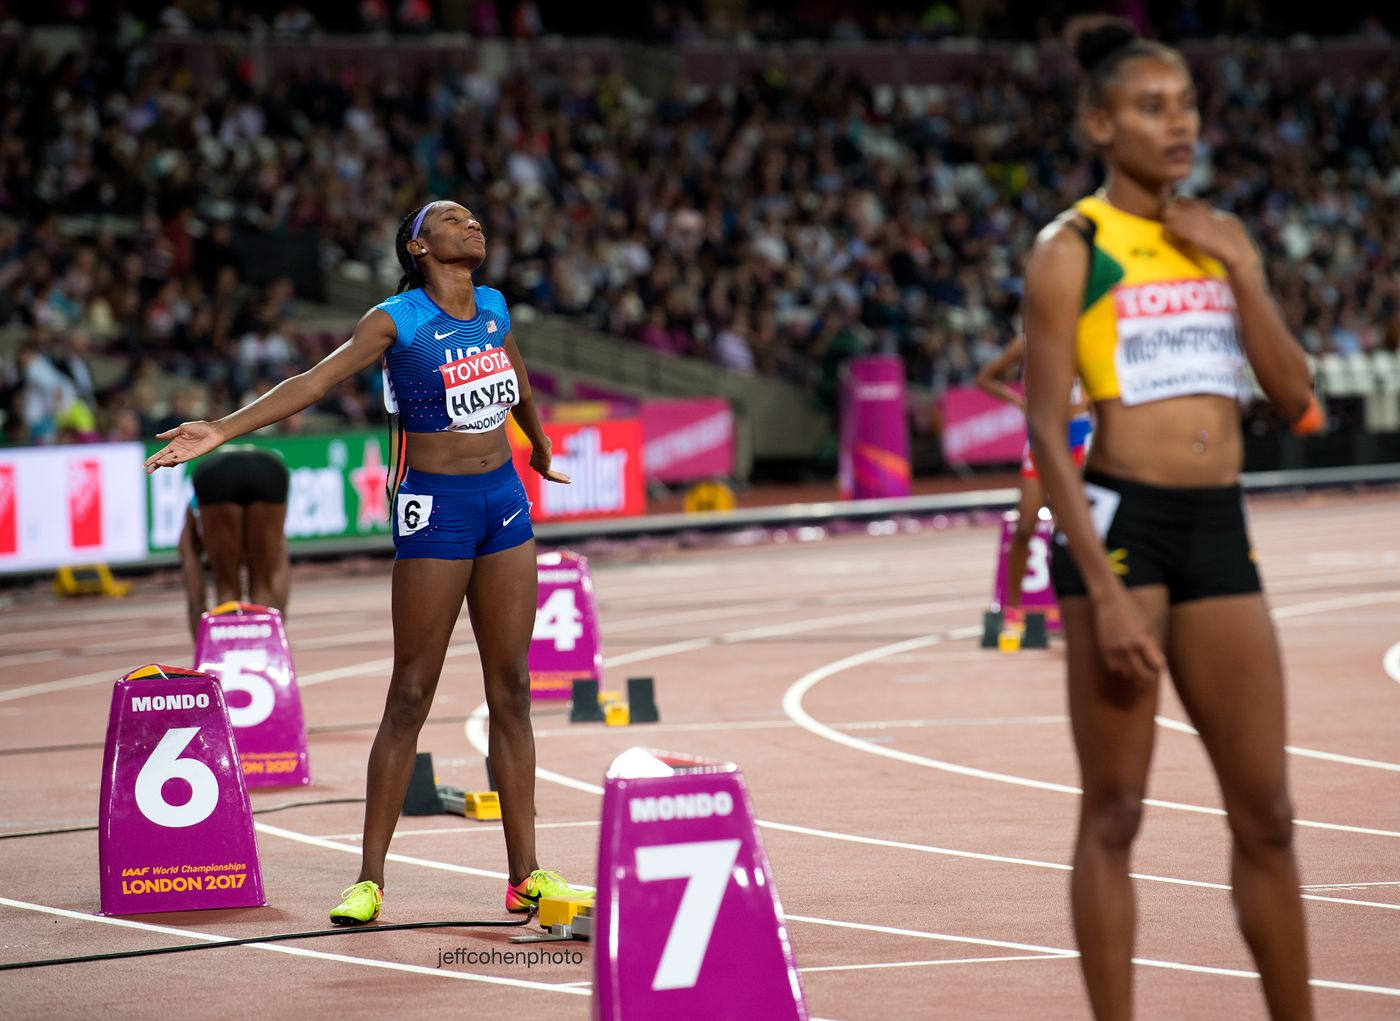 2017-IAAF-WC-London-night-4-quanera-hayes-400mw-ohen-photo--web.jpg